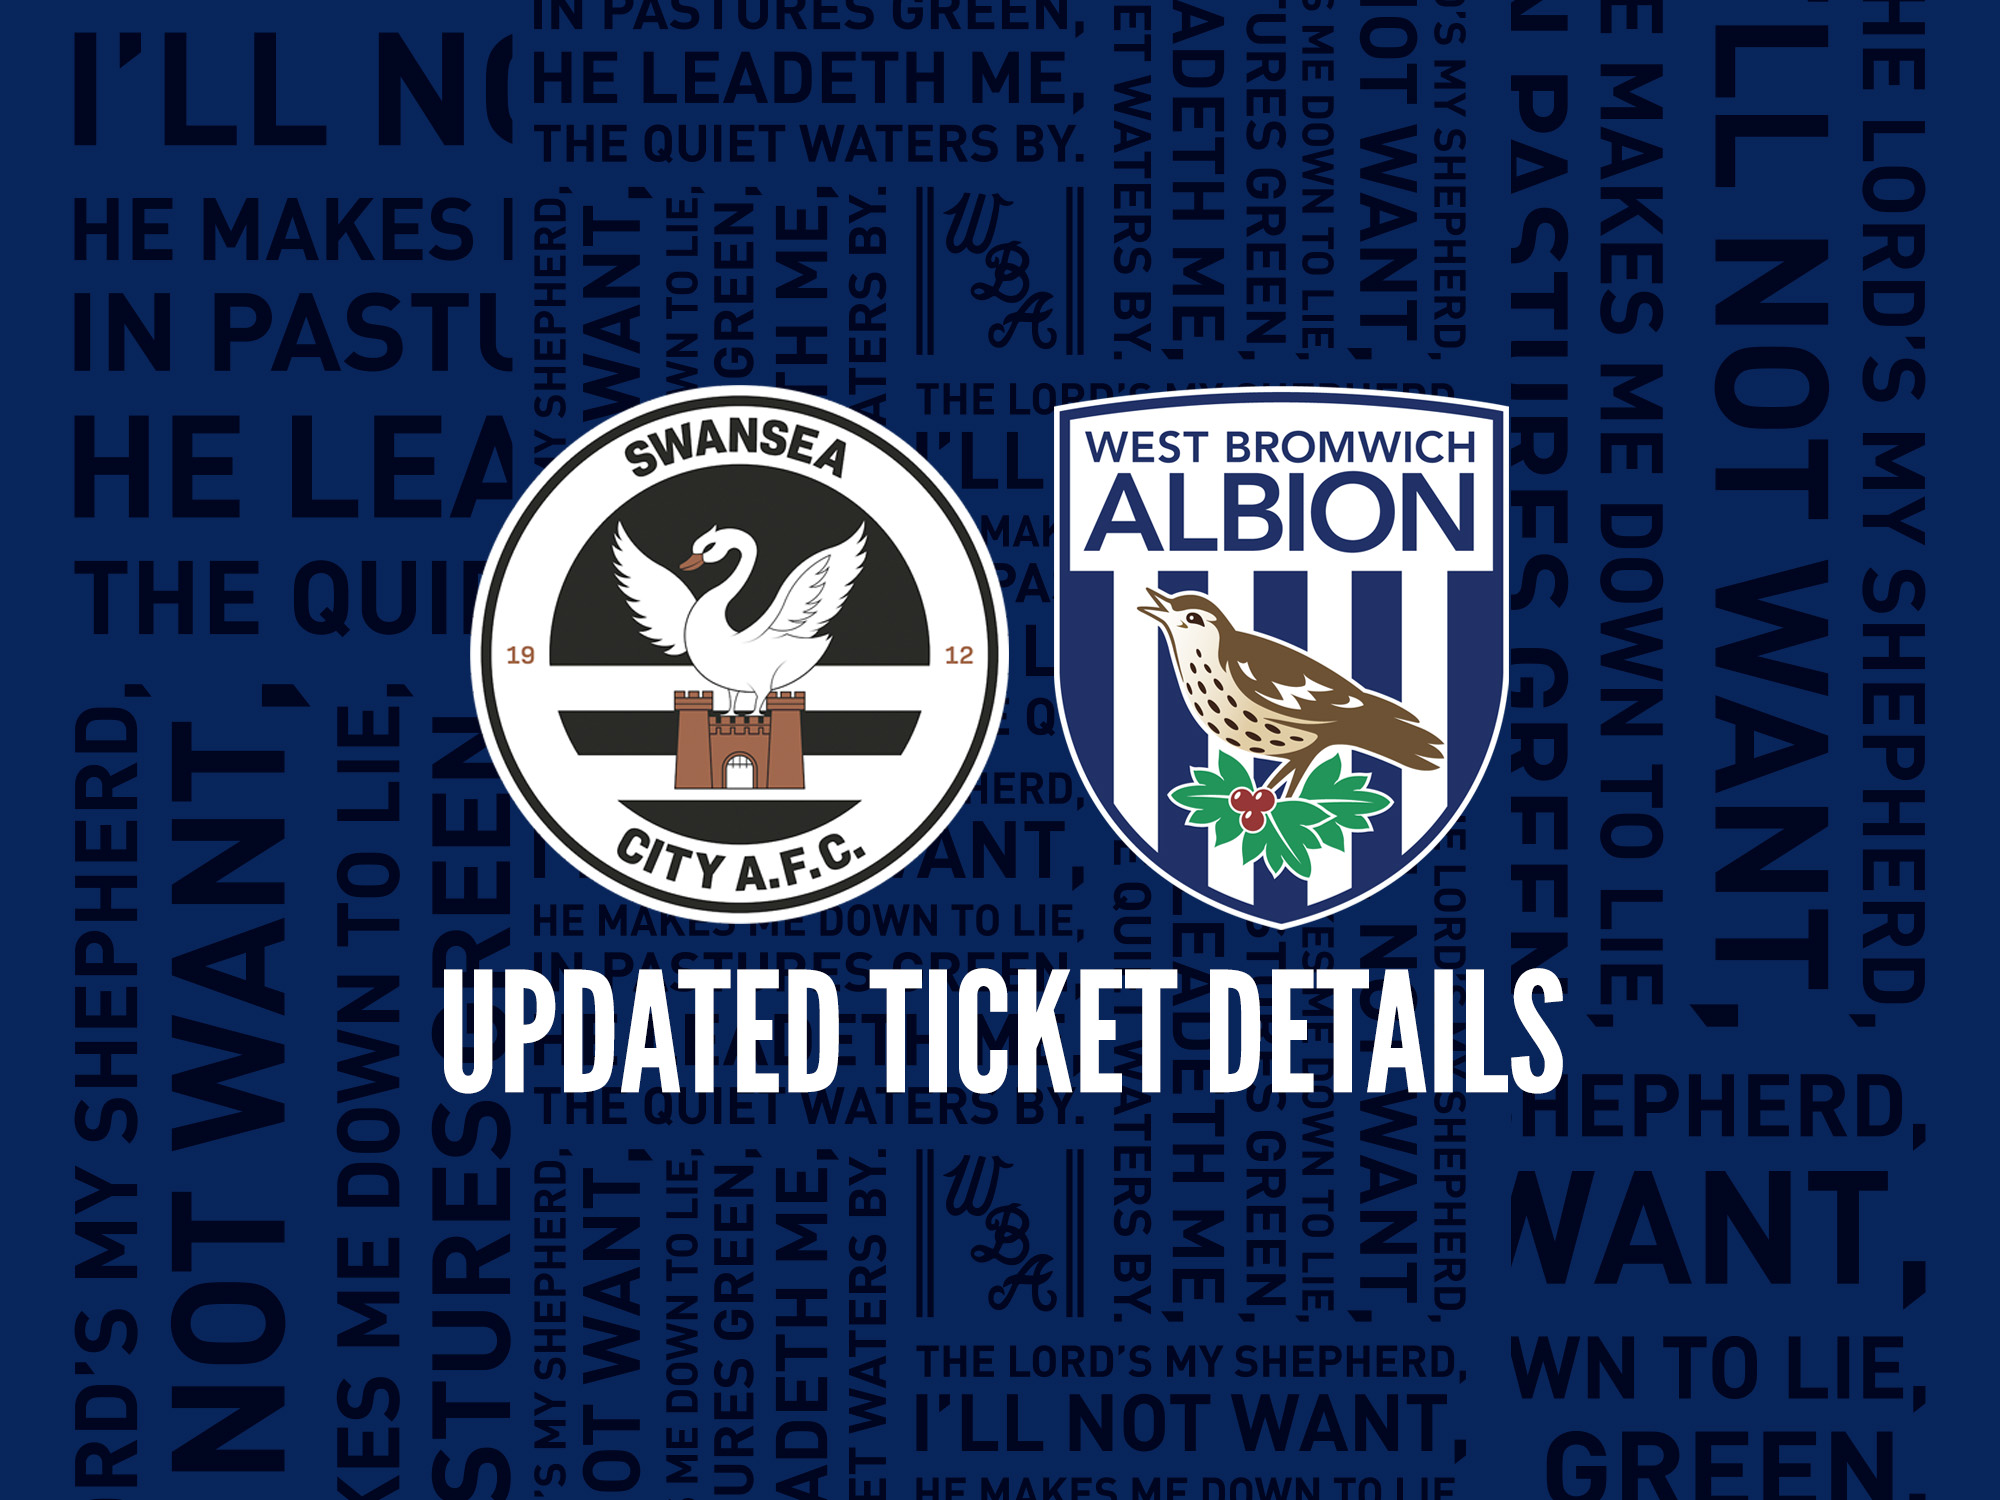 All the latest ticket information for our trip to Swansea City